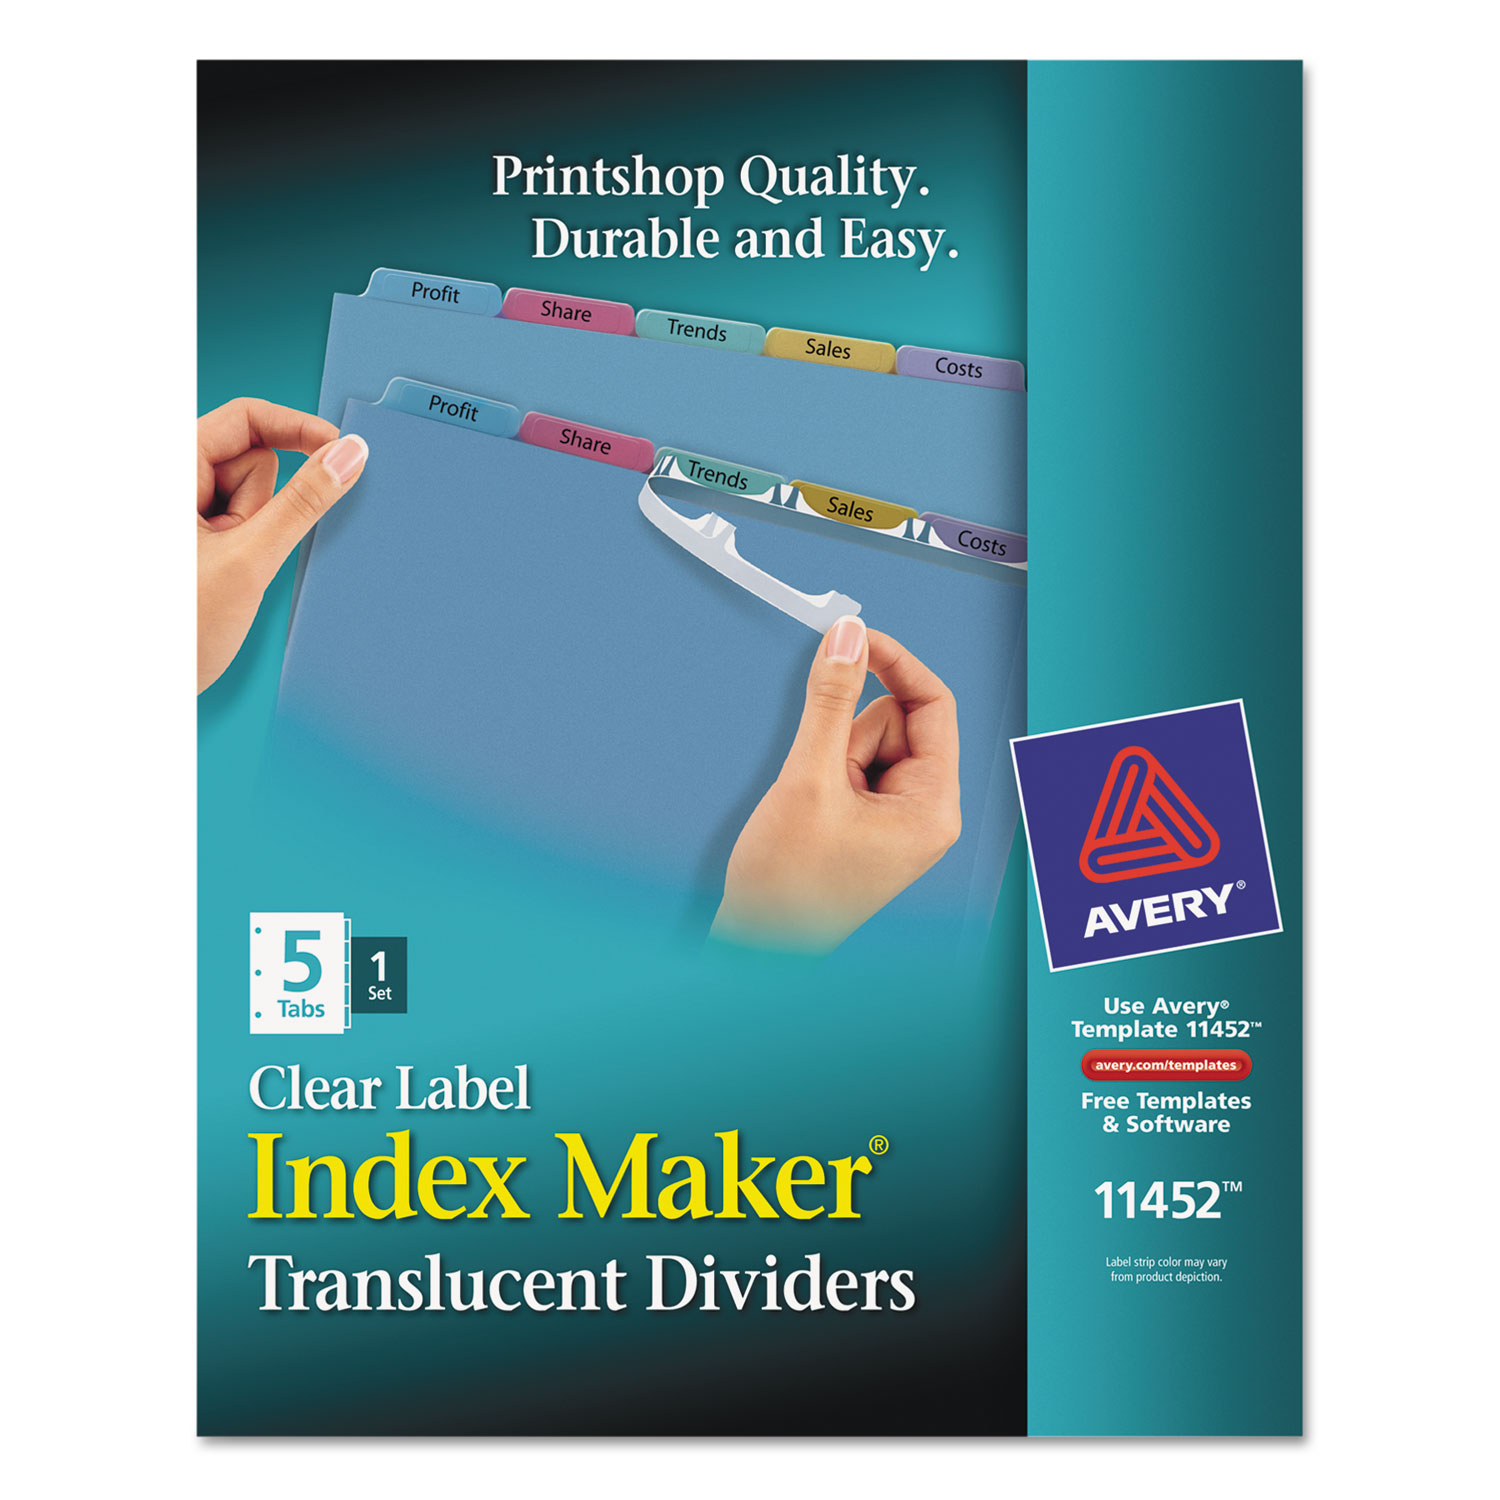 Index Maker Print Apply Clear Label Plastic Dividers By Avery